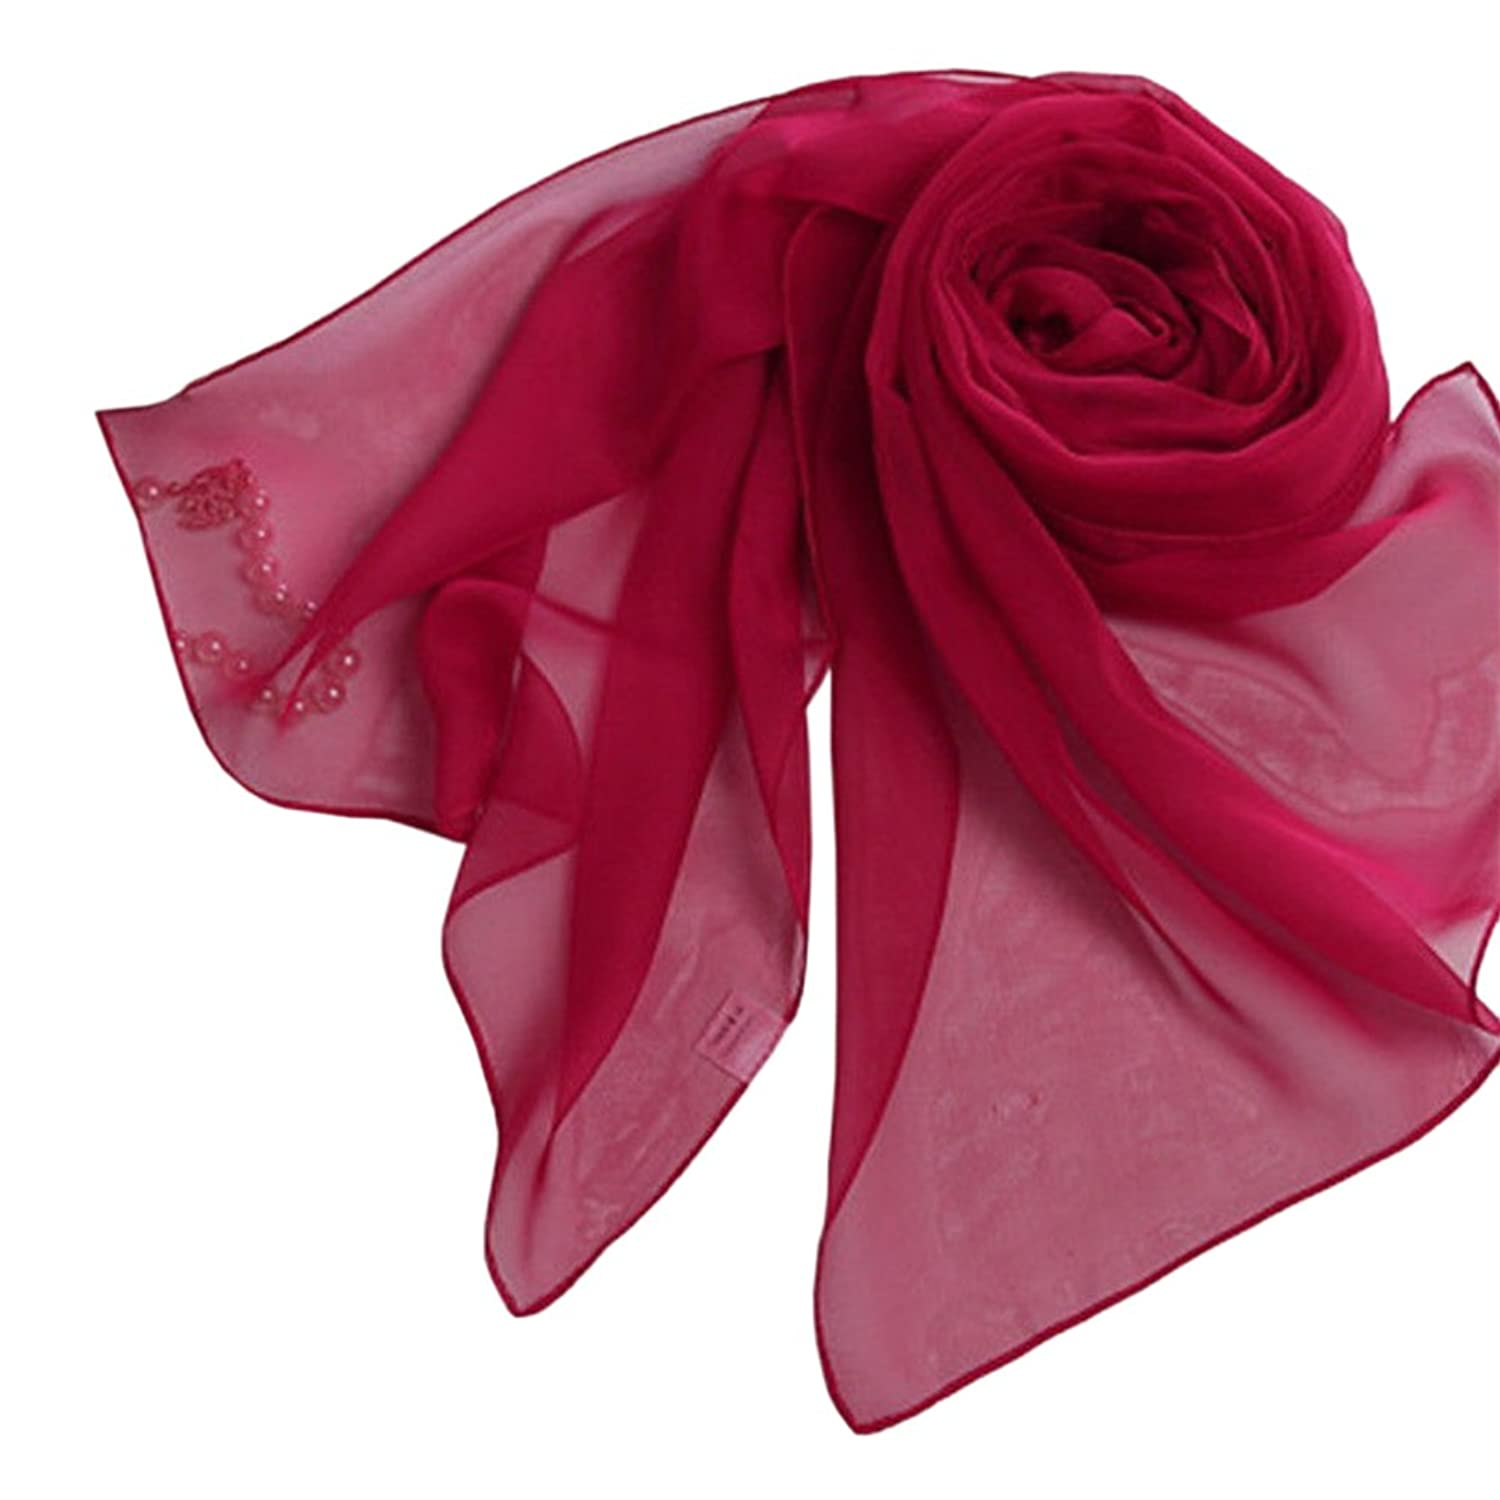 Fashion Lady Girls Long Sof tred Chiffon Scarf Wrap Shawl Stole Scarves